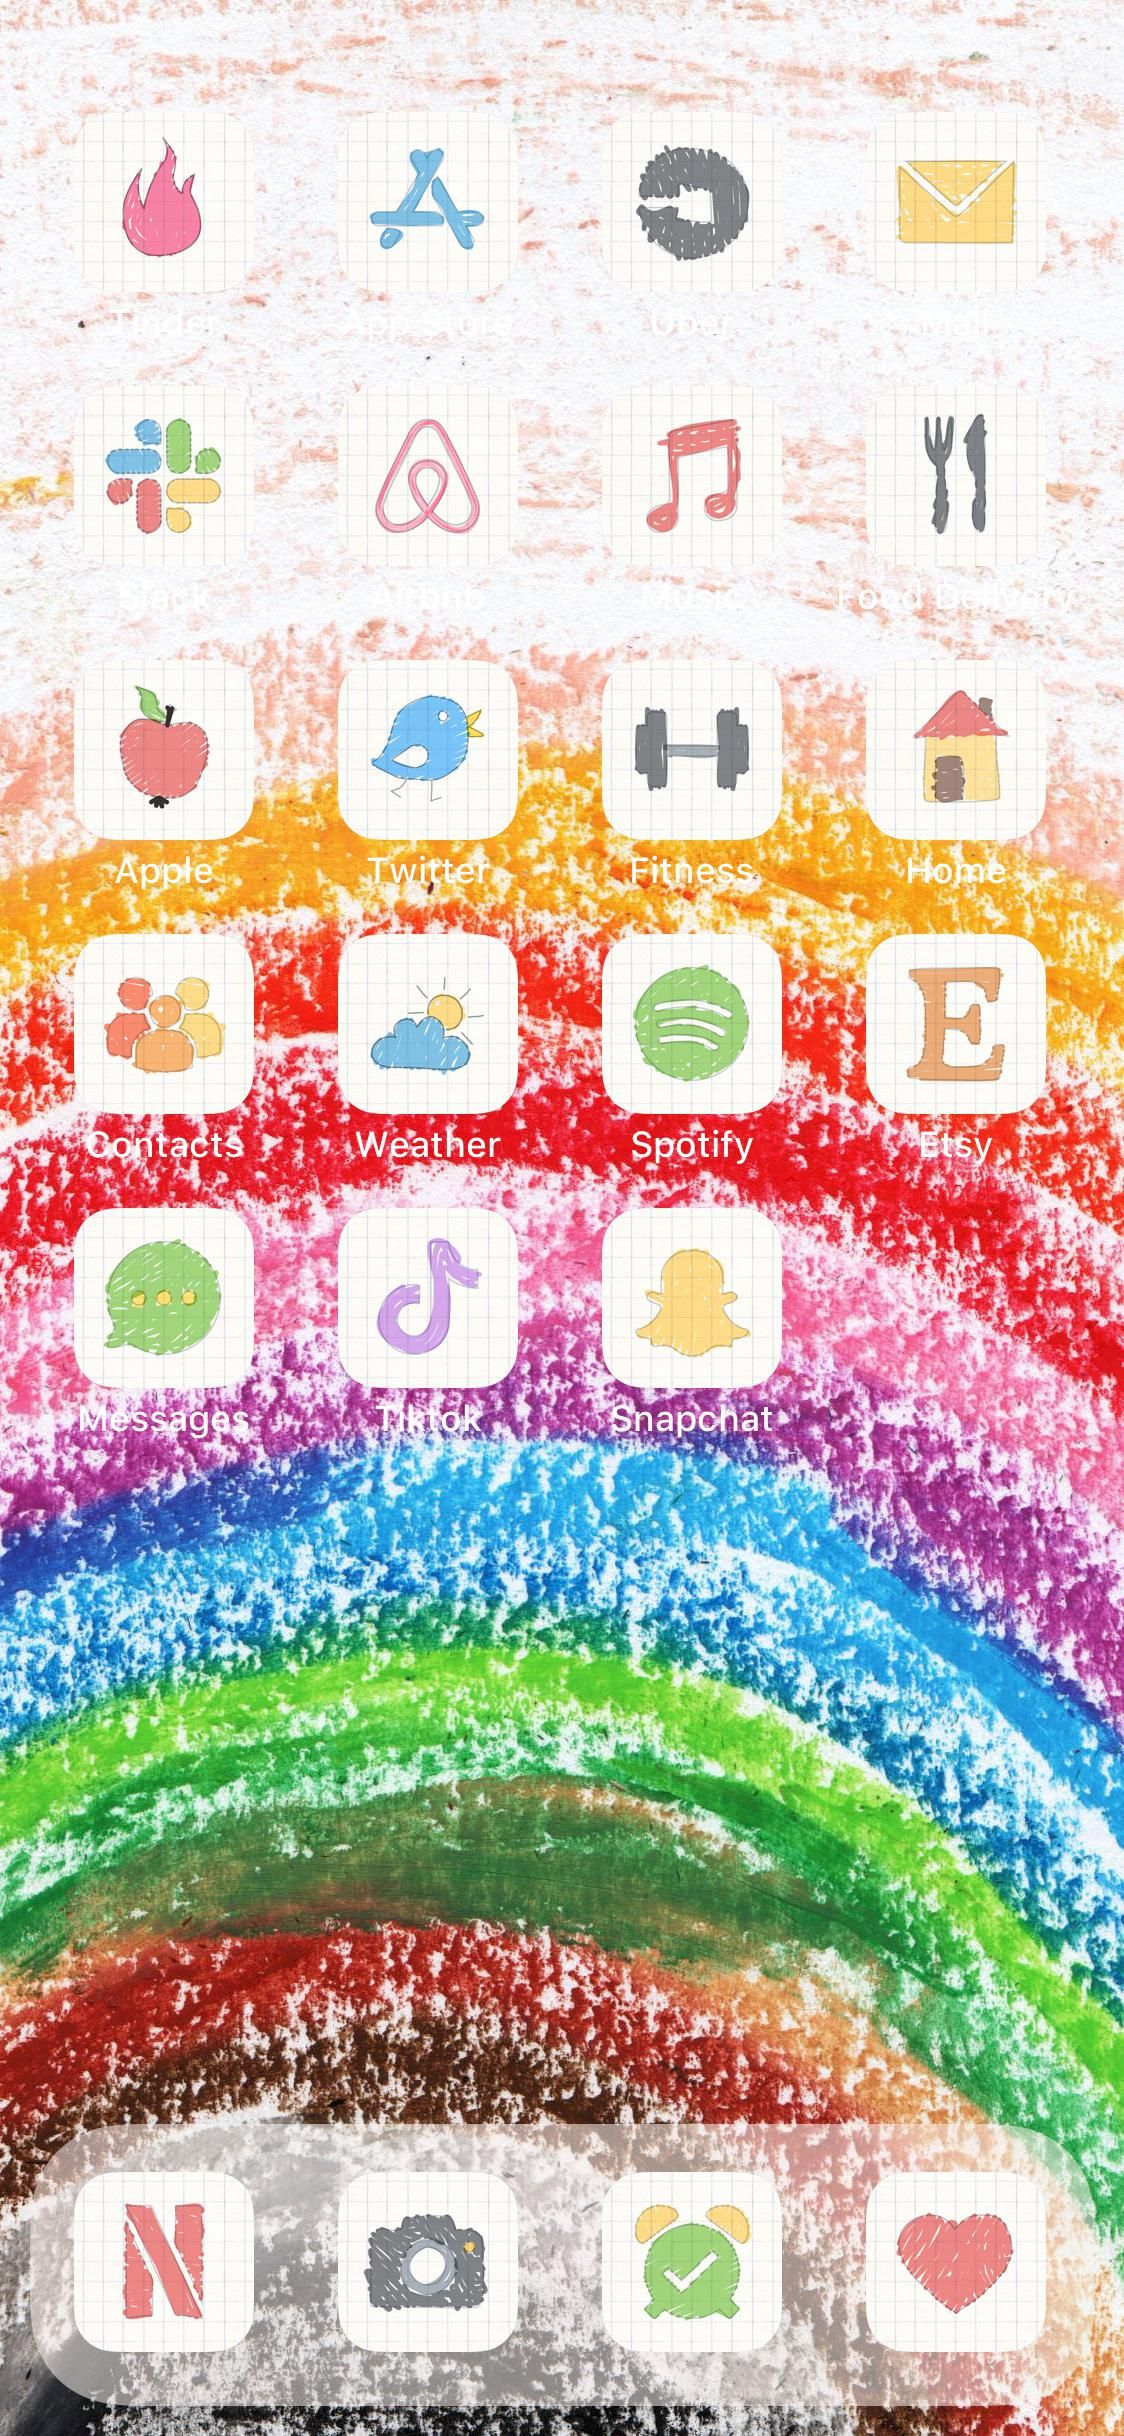 Doodle app icon covers for ios 14 home screen etsy app